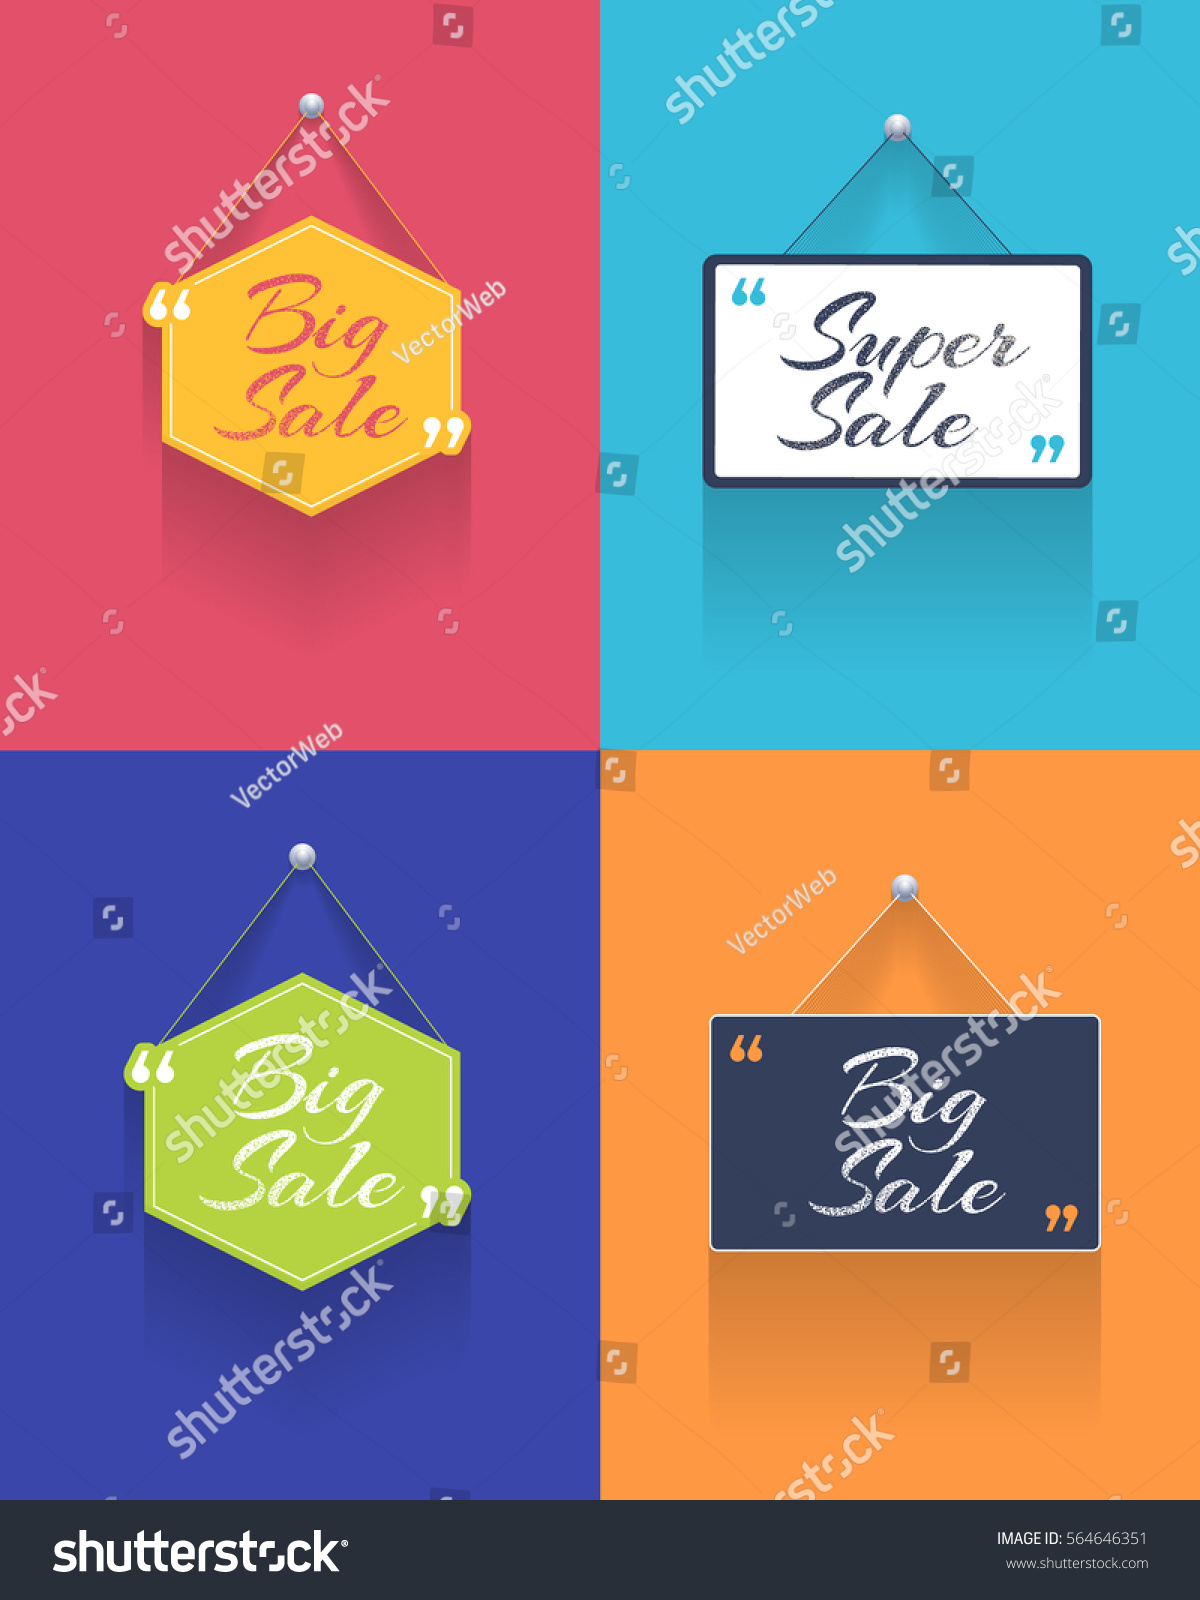 vector diffirent flat web ad template stock vector  vector diffirent flat web ad template long shadow style quotes banner design big